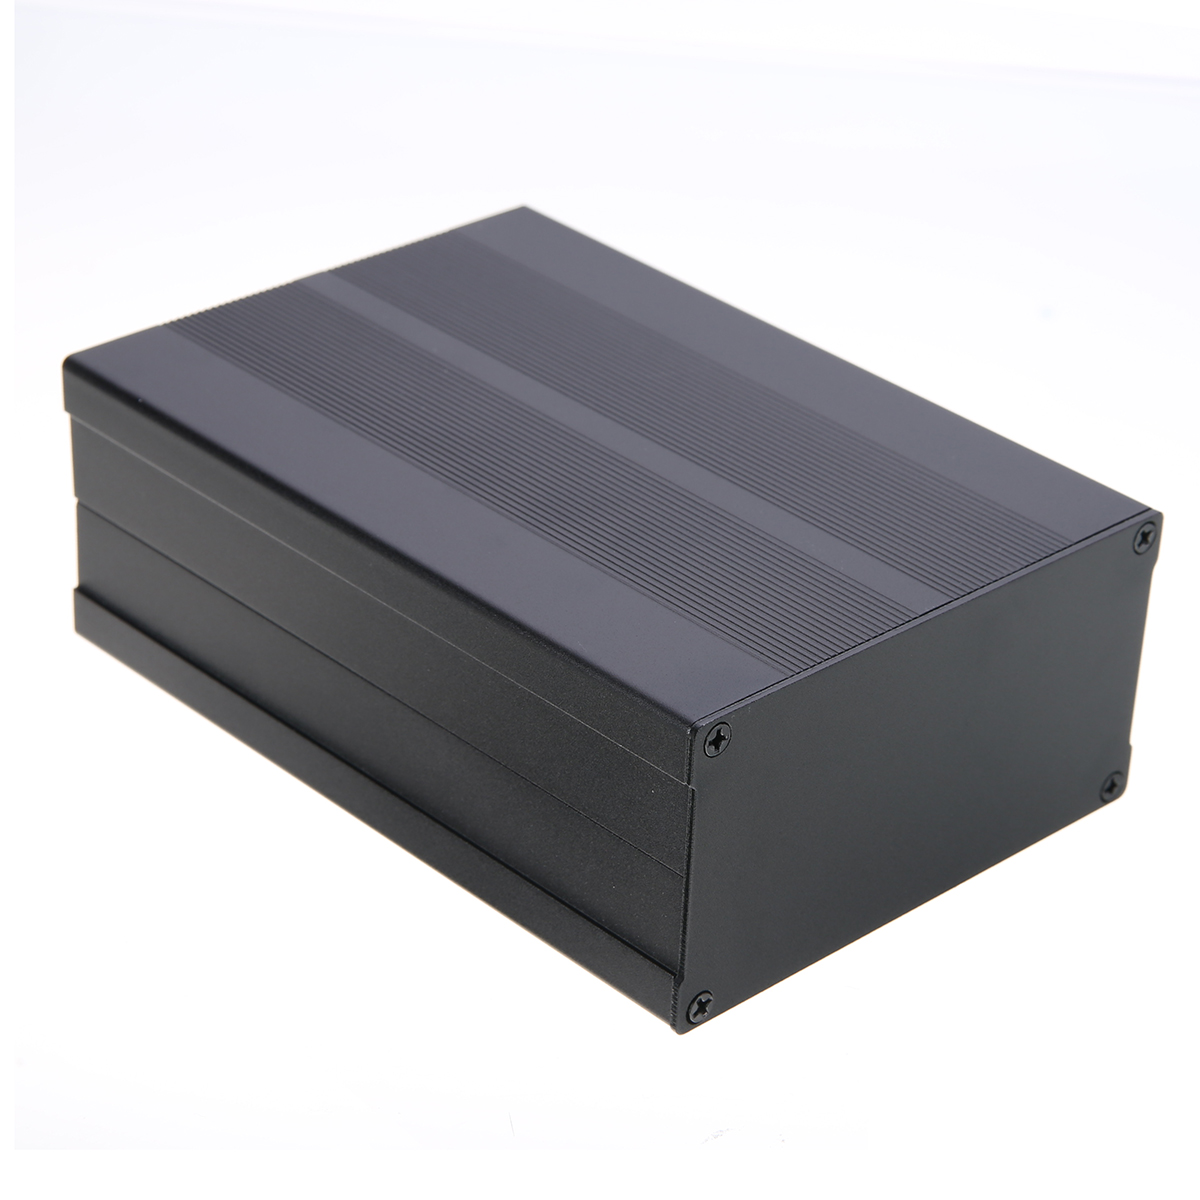 Black Electronic Project Case Aluminum Circuit Board Enclosure Box 150x105x55mm with Screws black electronic project case aluminum circuit board enclosure box 150x105x55mm with screws